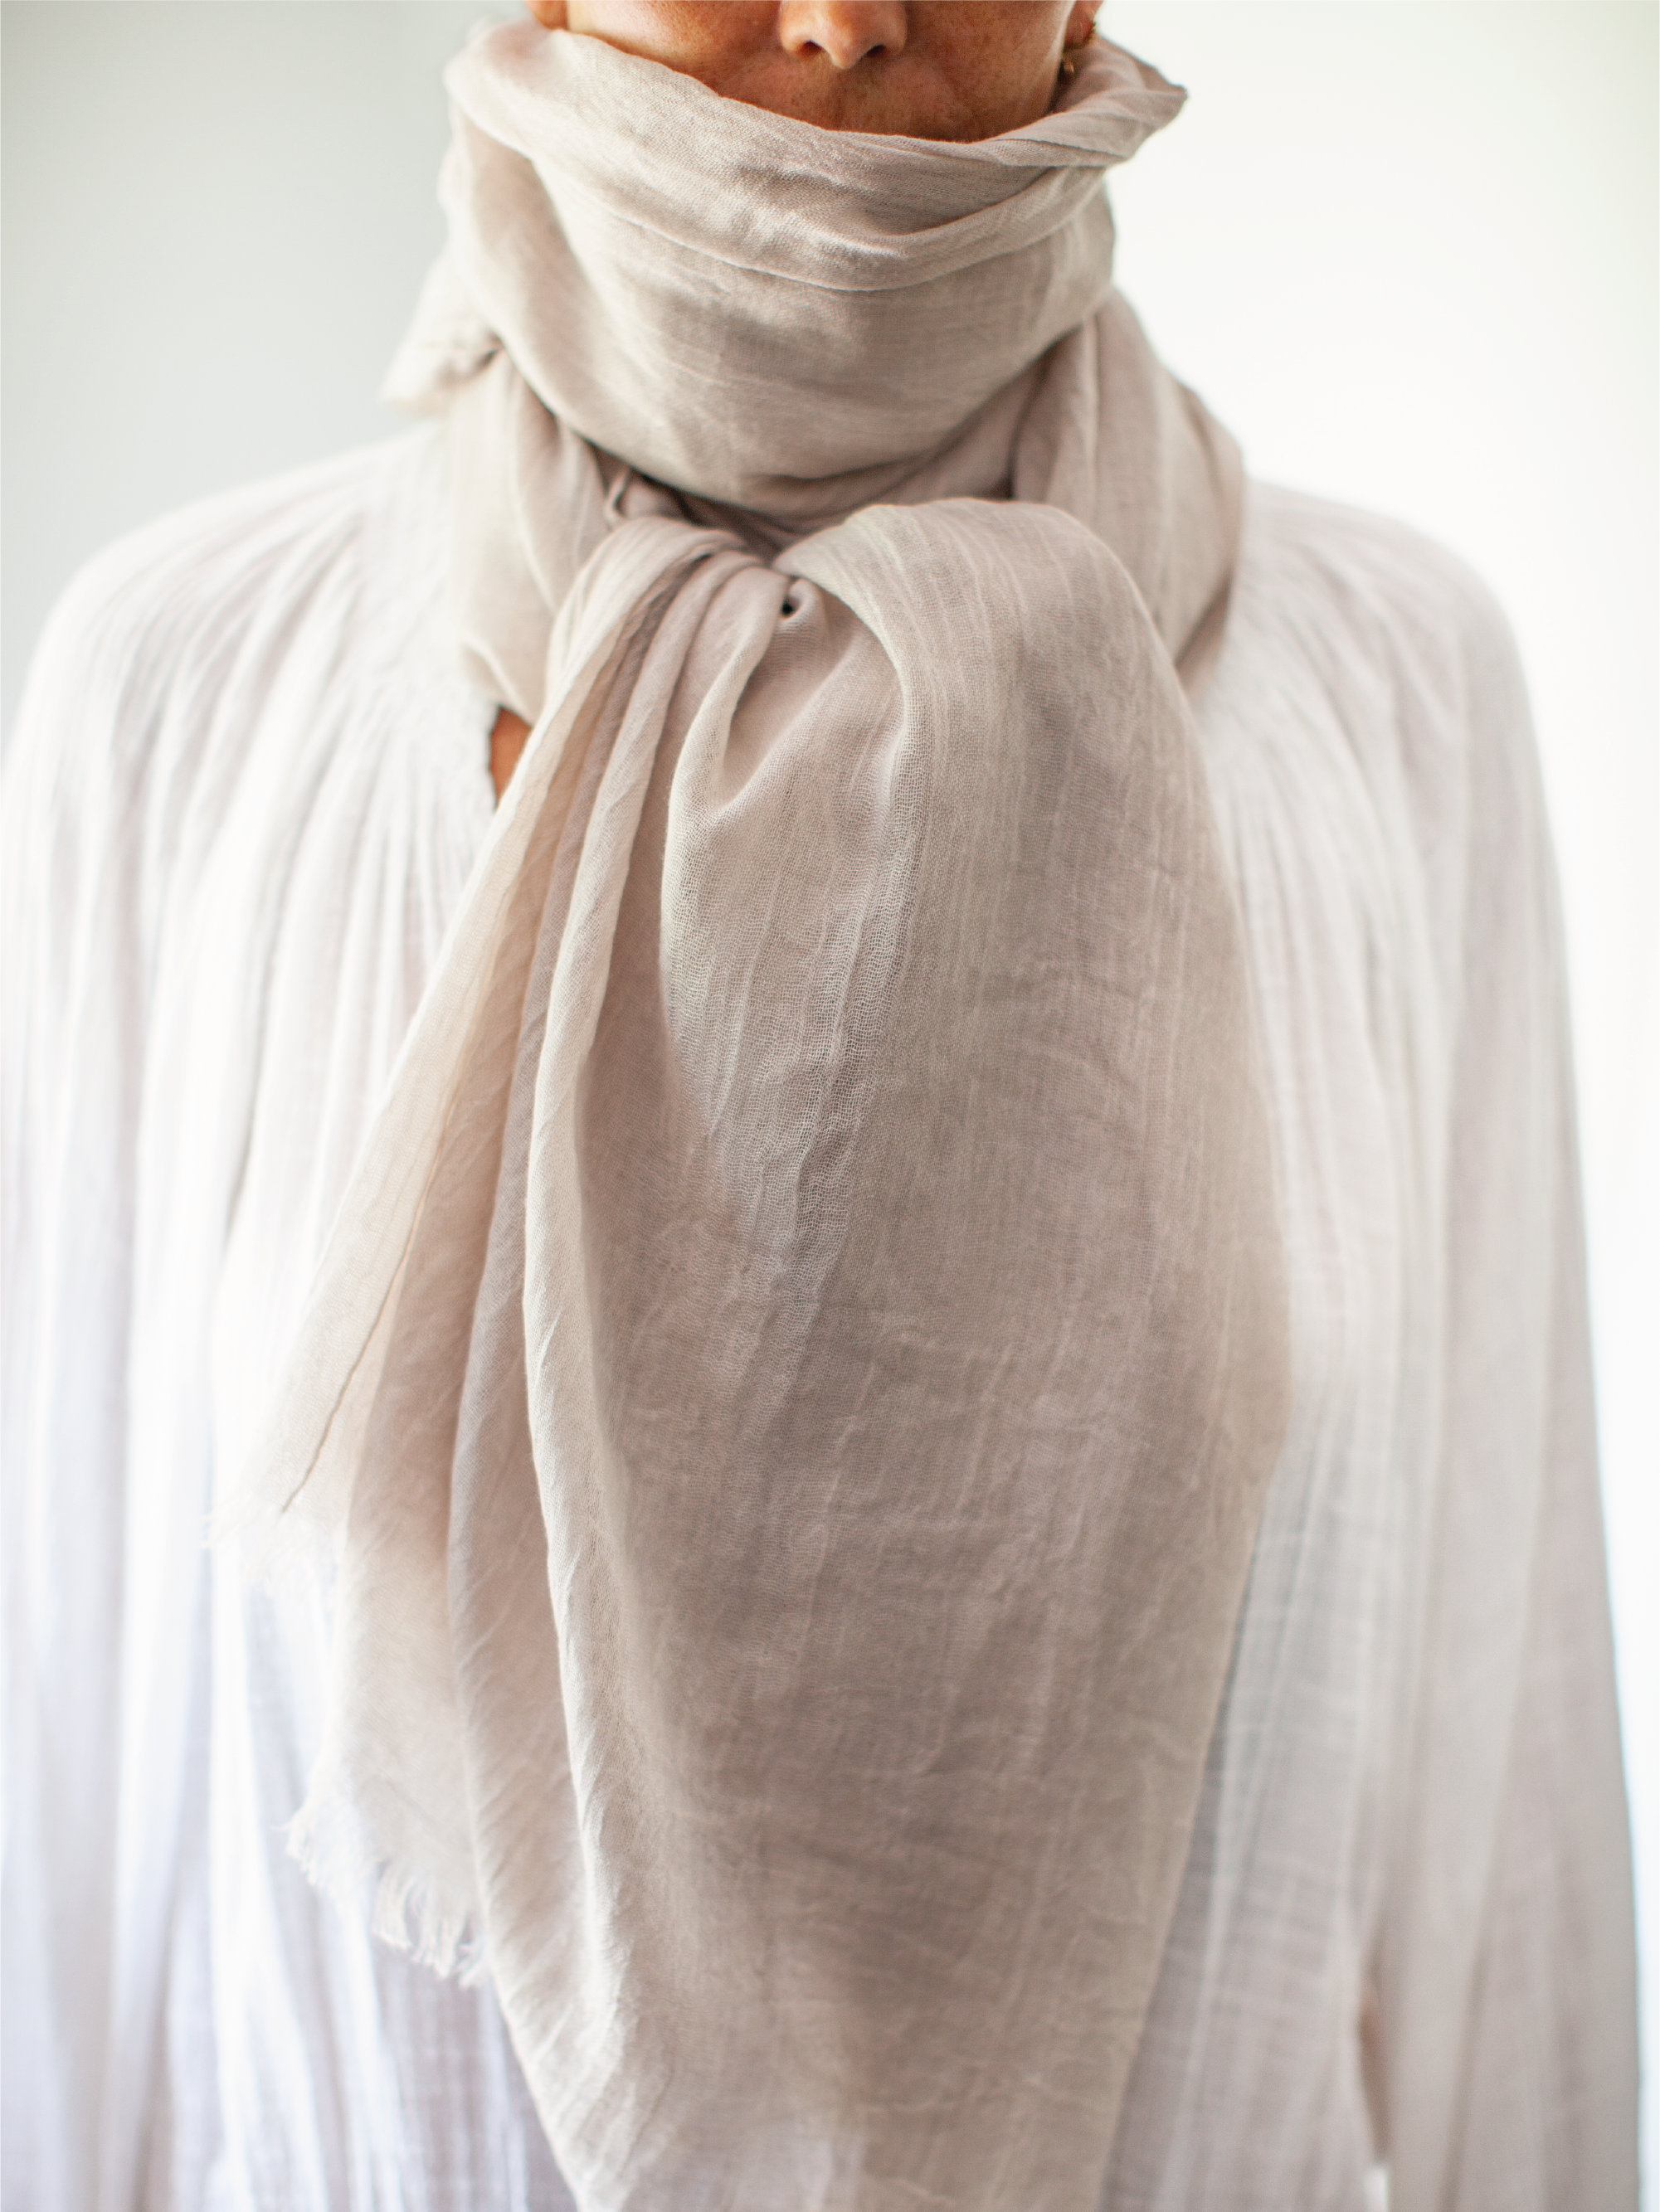 Soft blanket Albi &Mac  scarf which comes in a £50 gift box